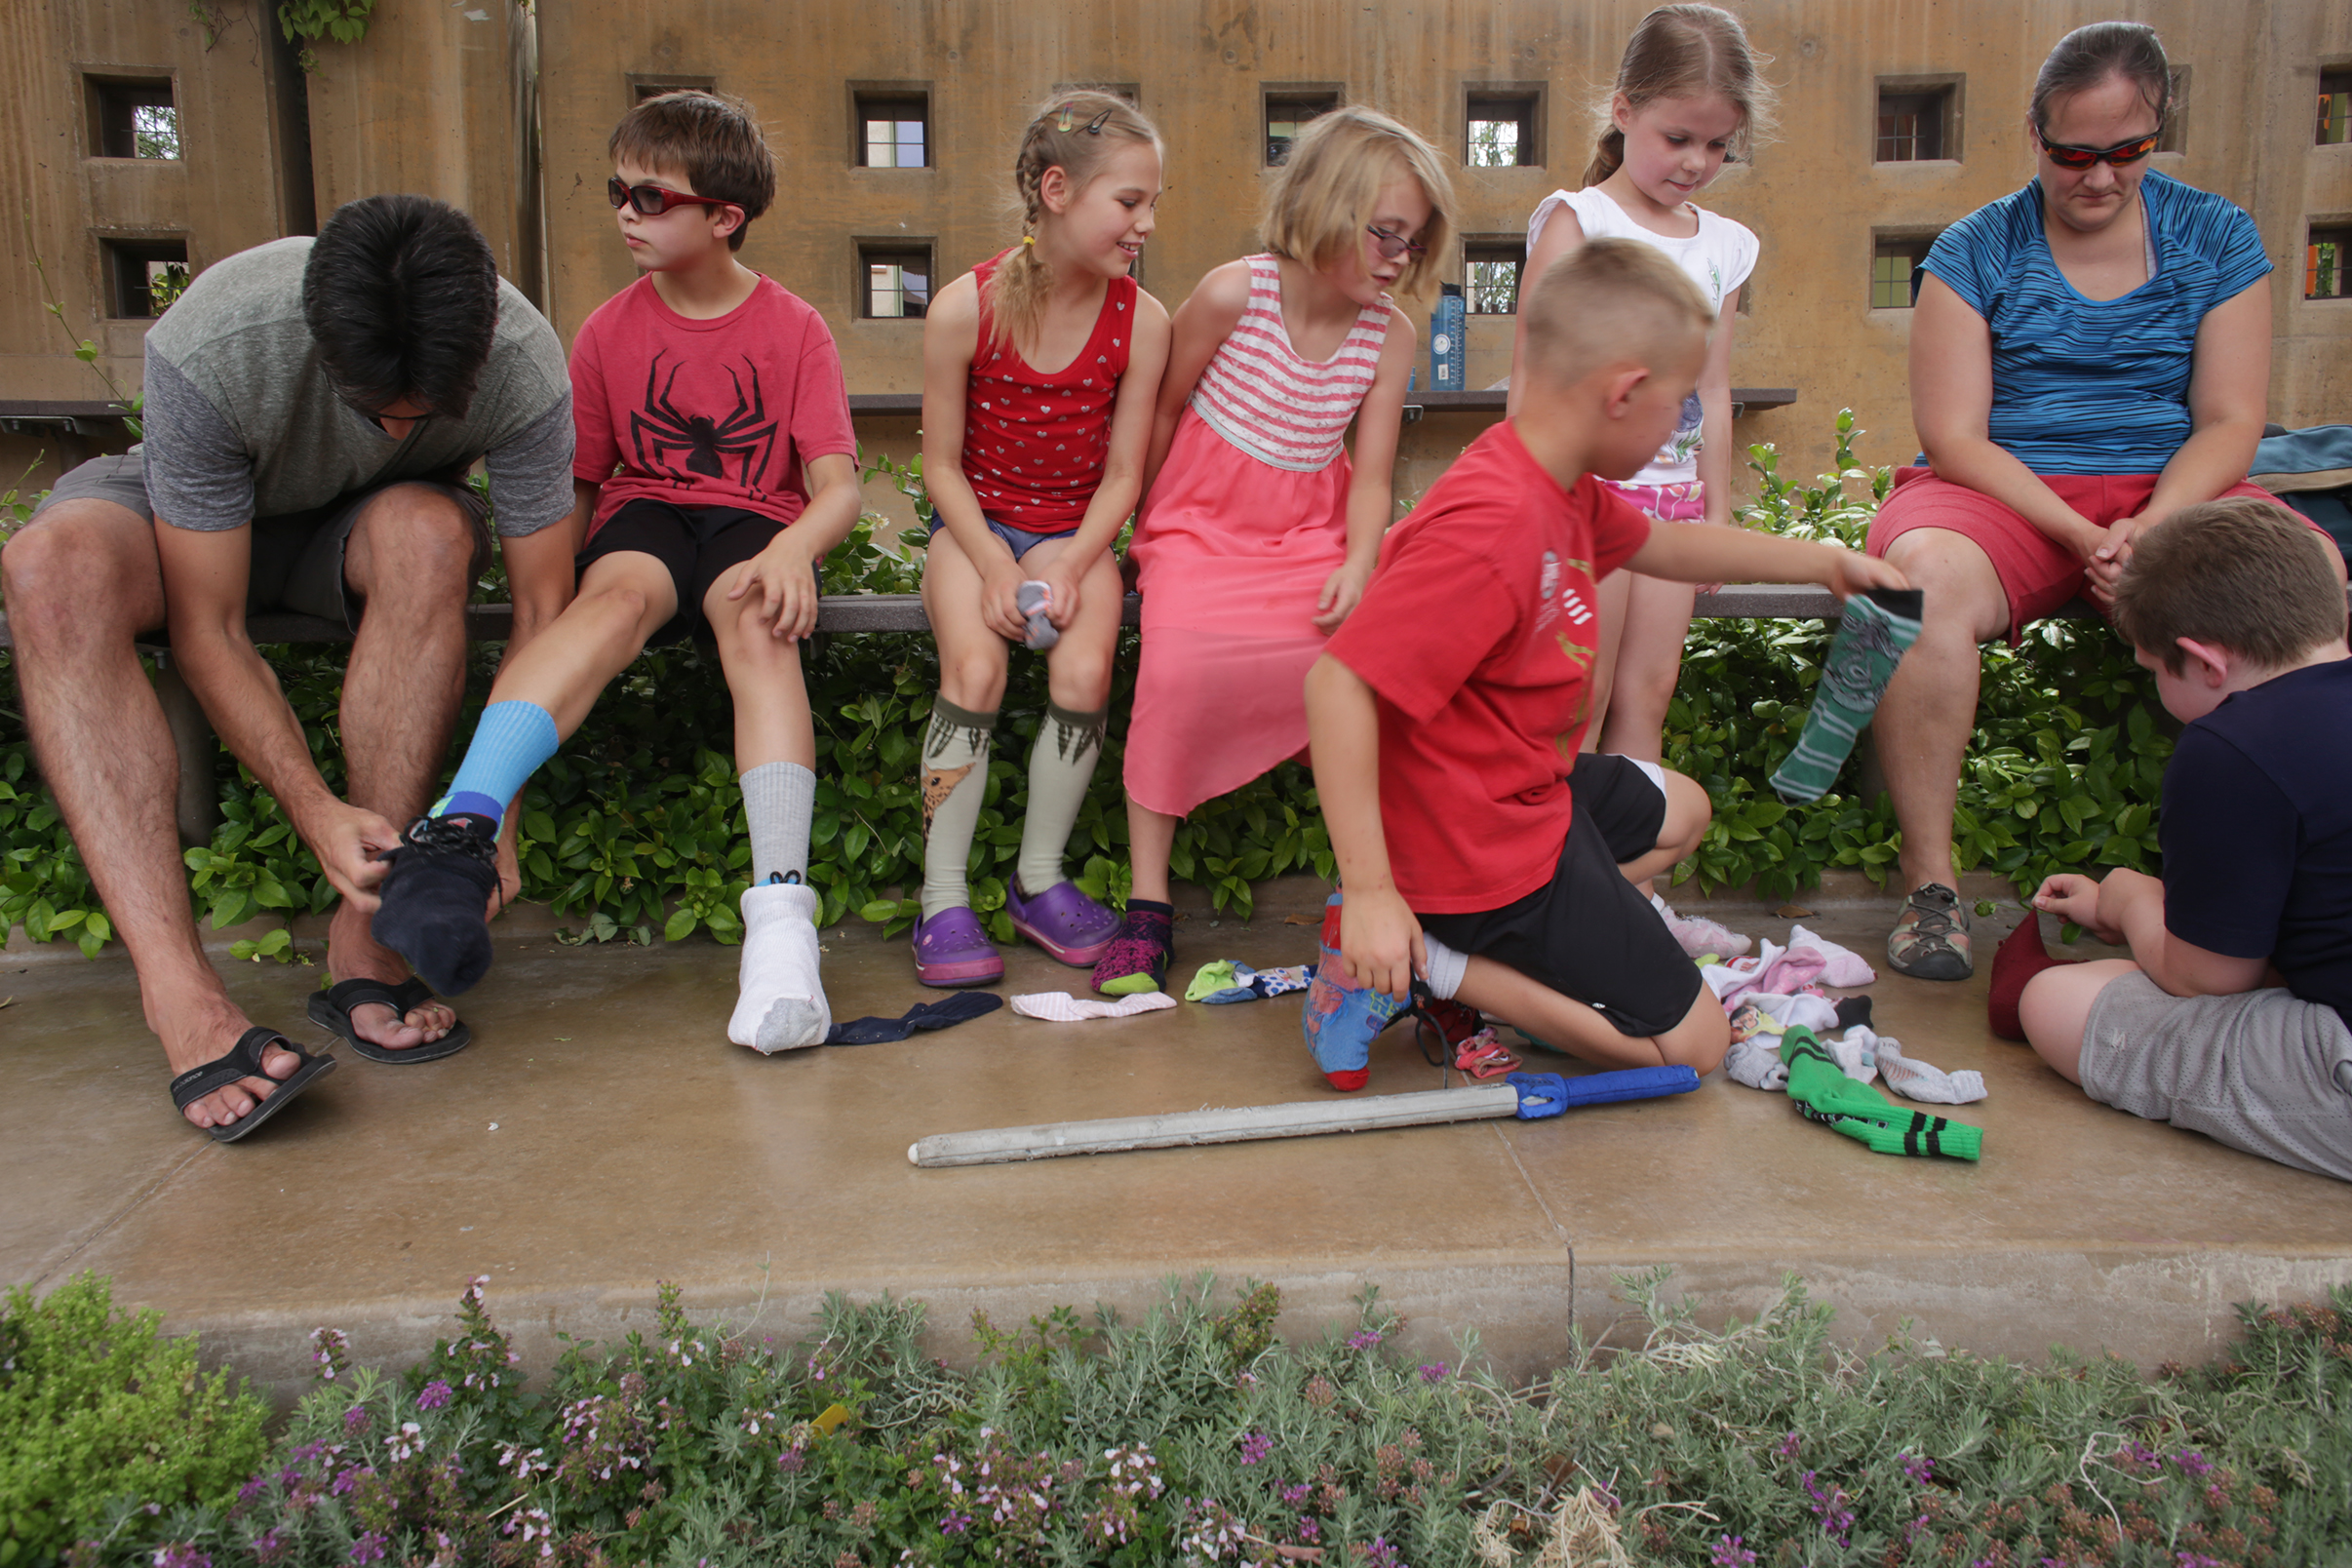 Students remove socks at the Springs Reserve